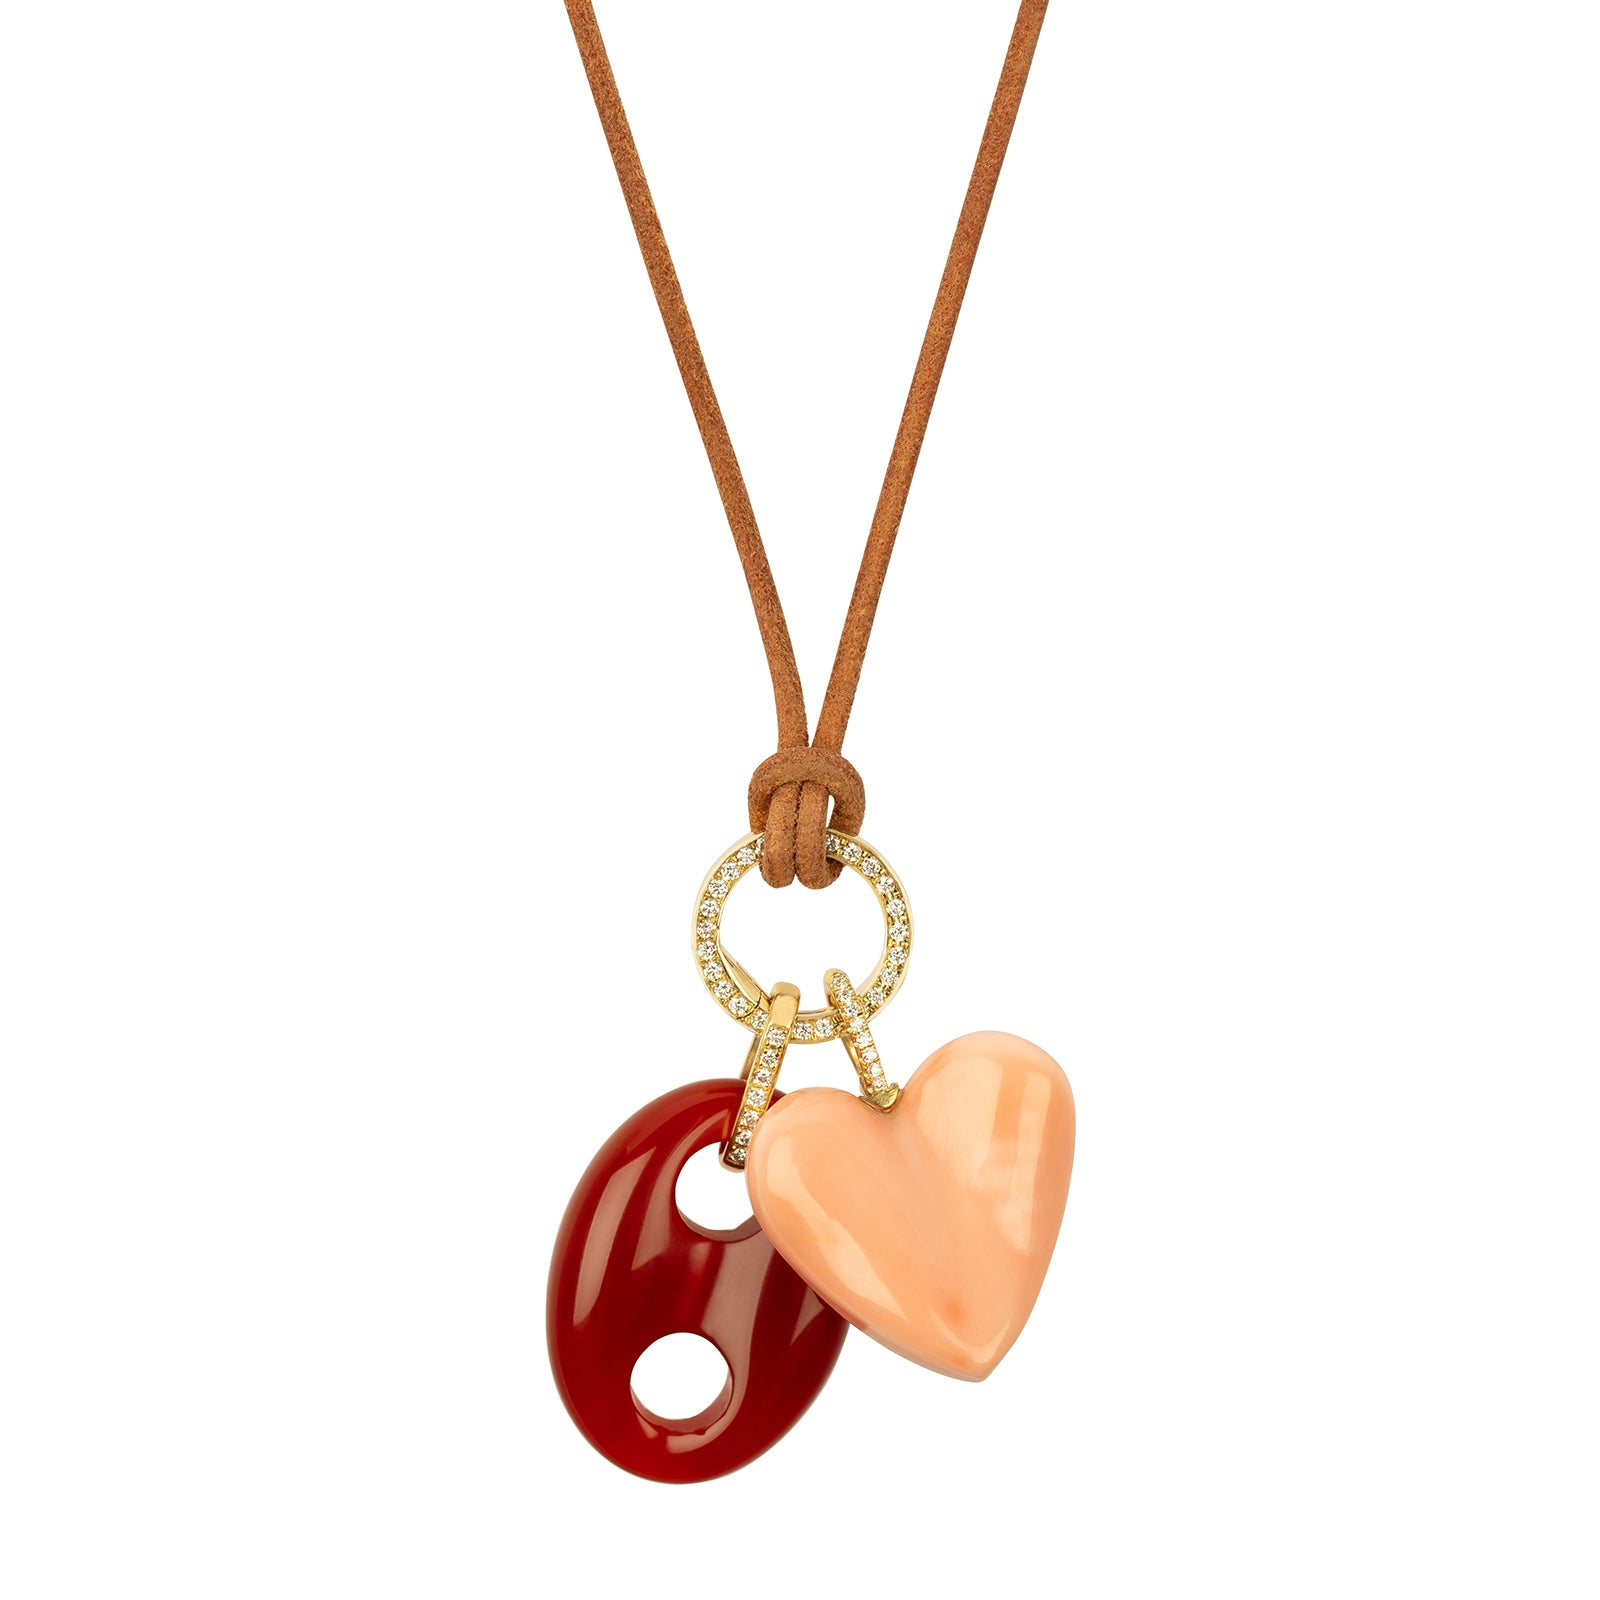 Jenna Blake Angel Skin Coral Heart Pendant - Charms & Pendants - Broken English Jewelry